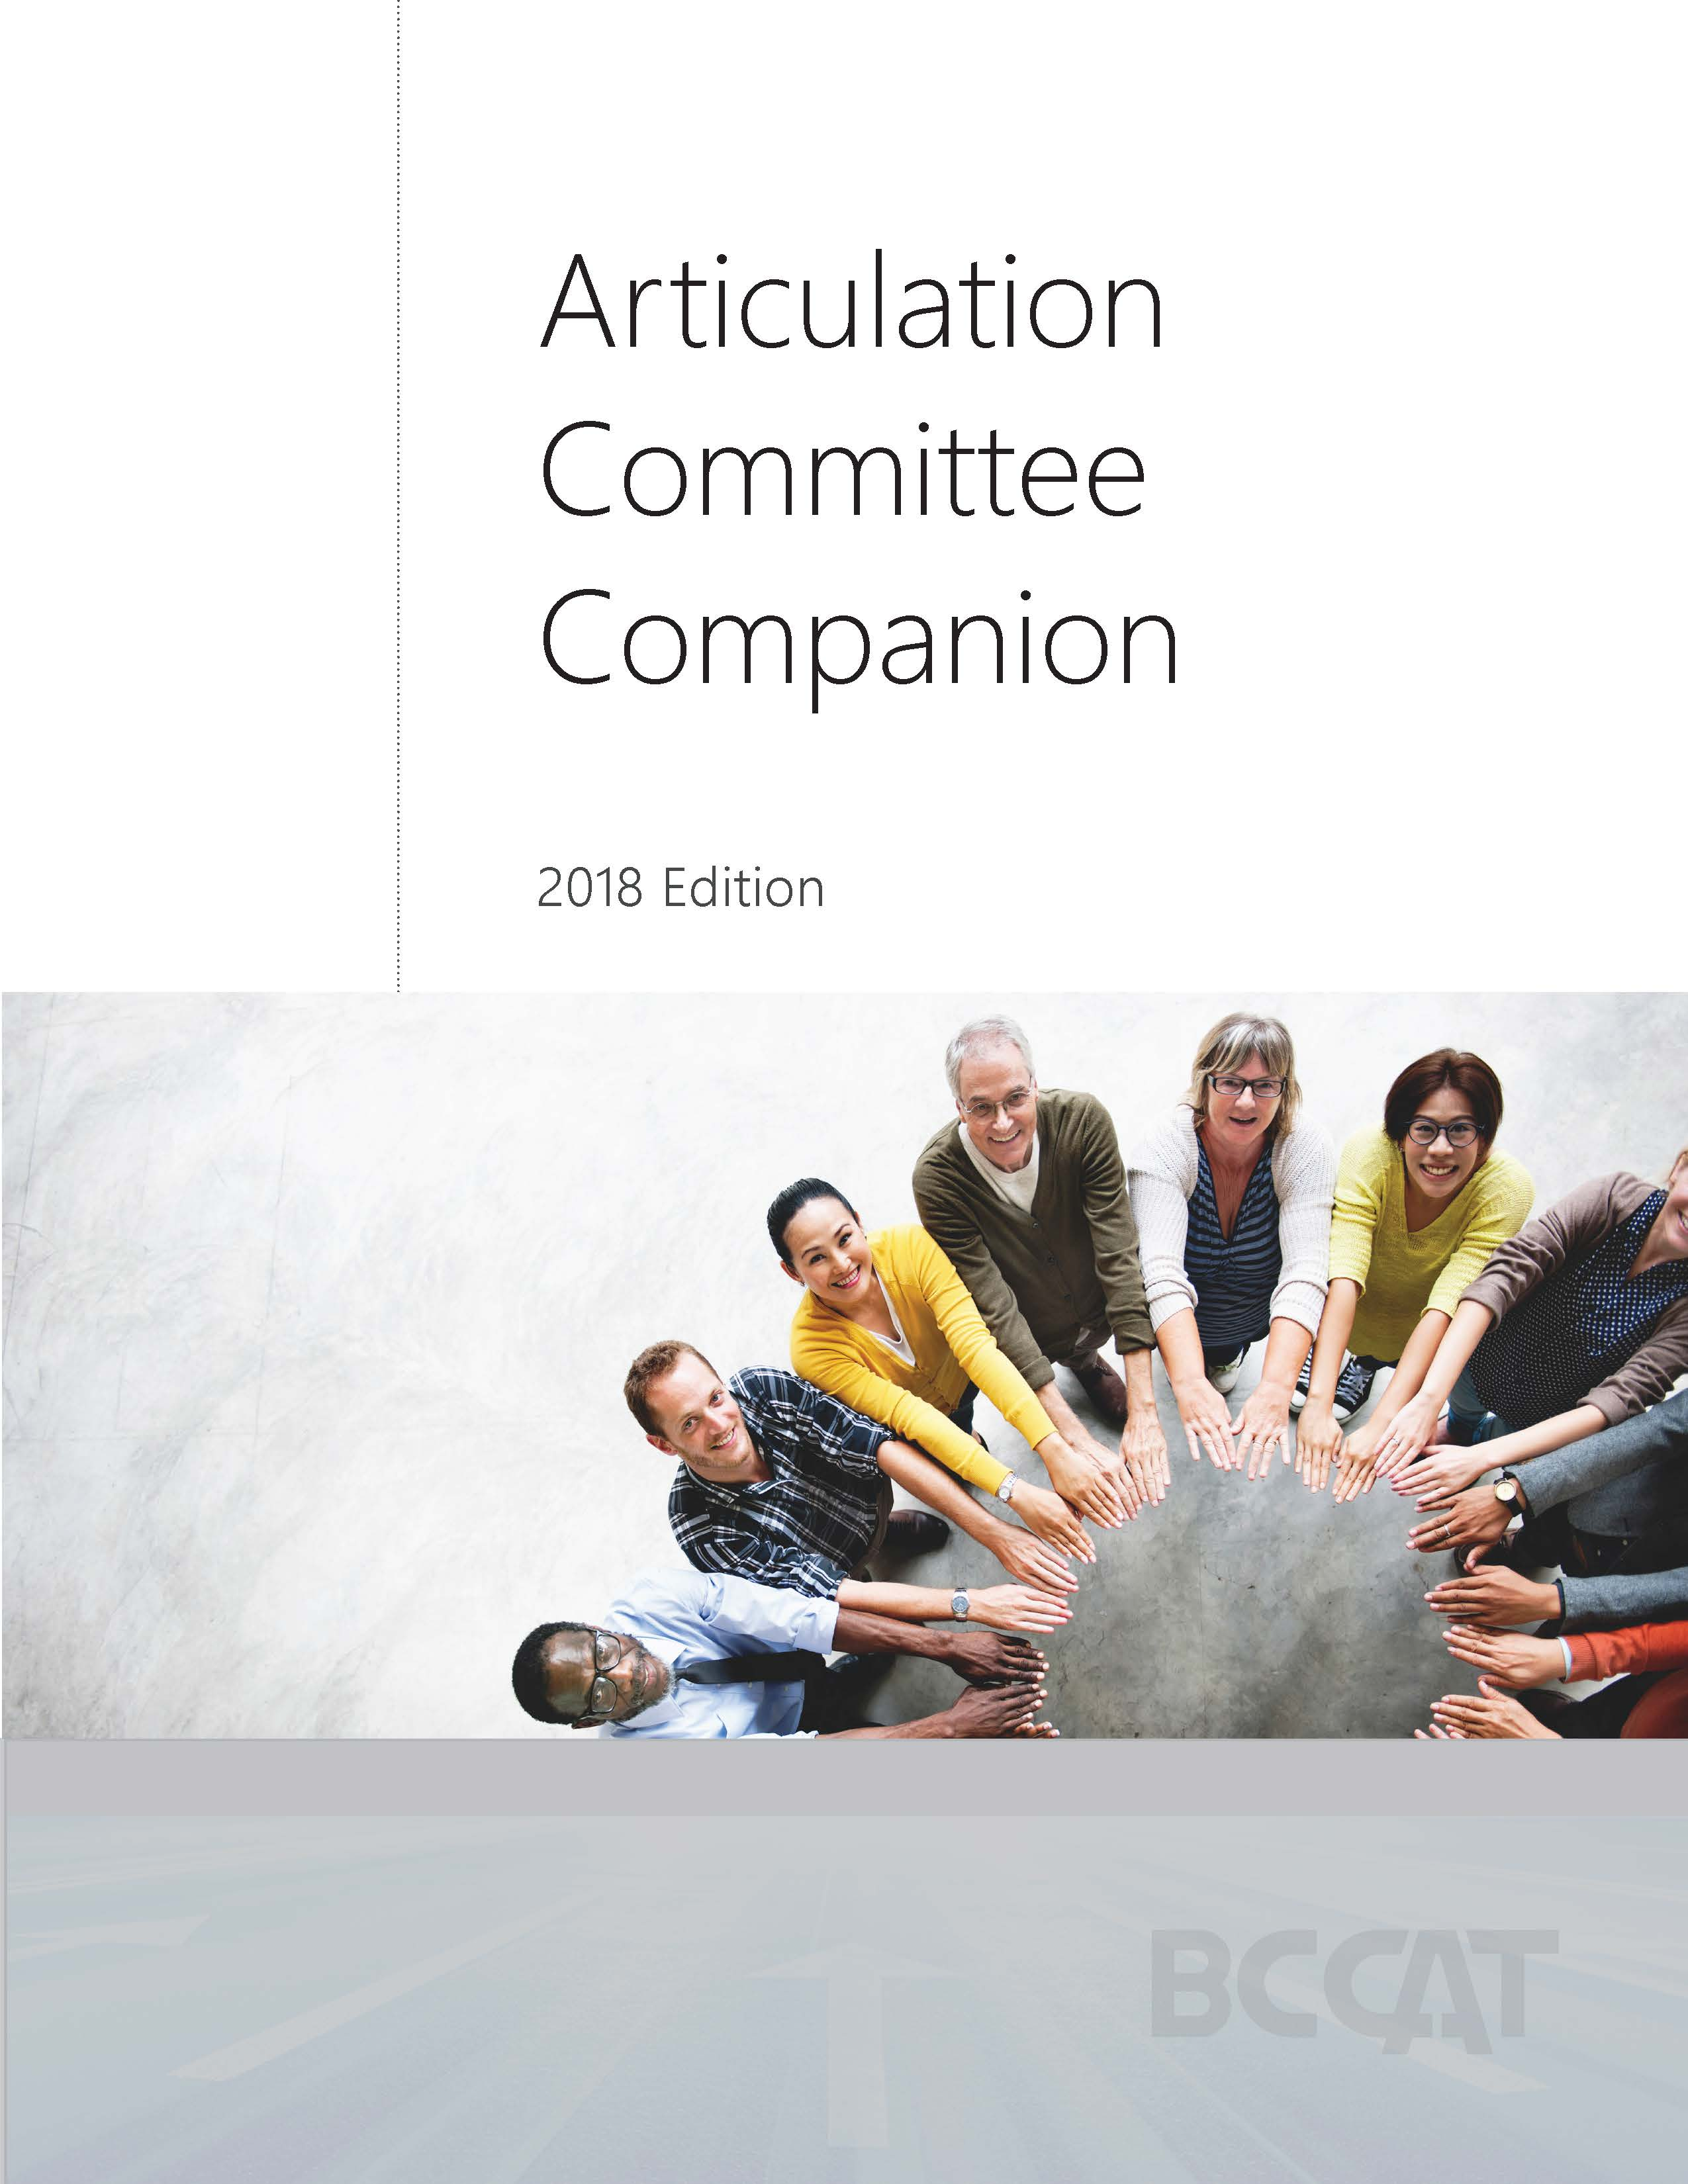 Articulation Committee Companion